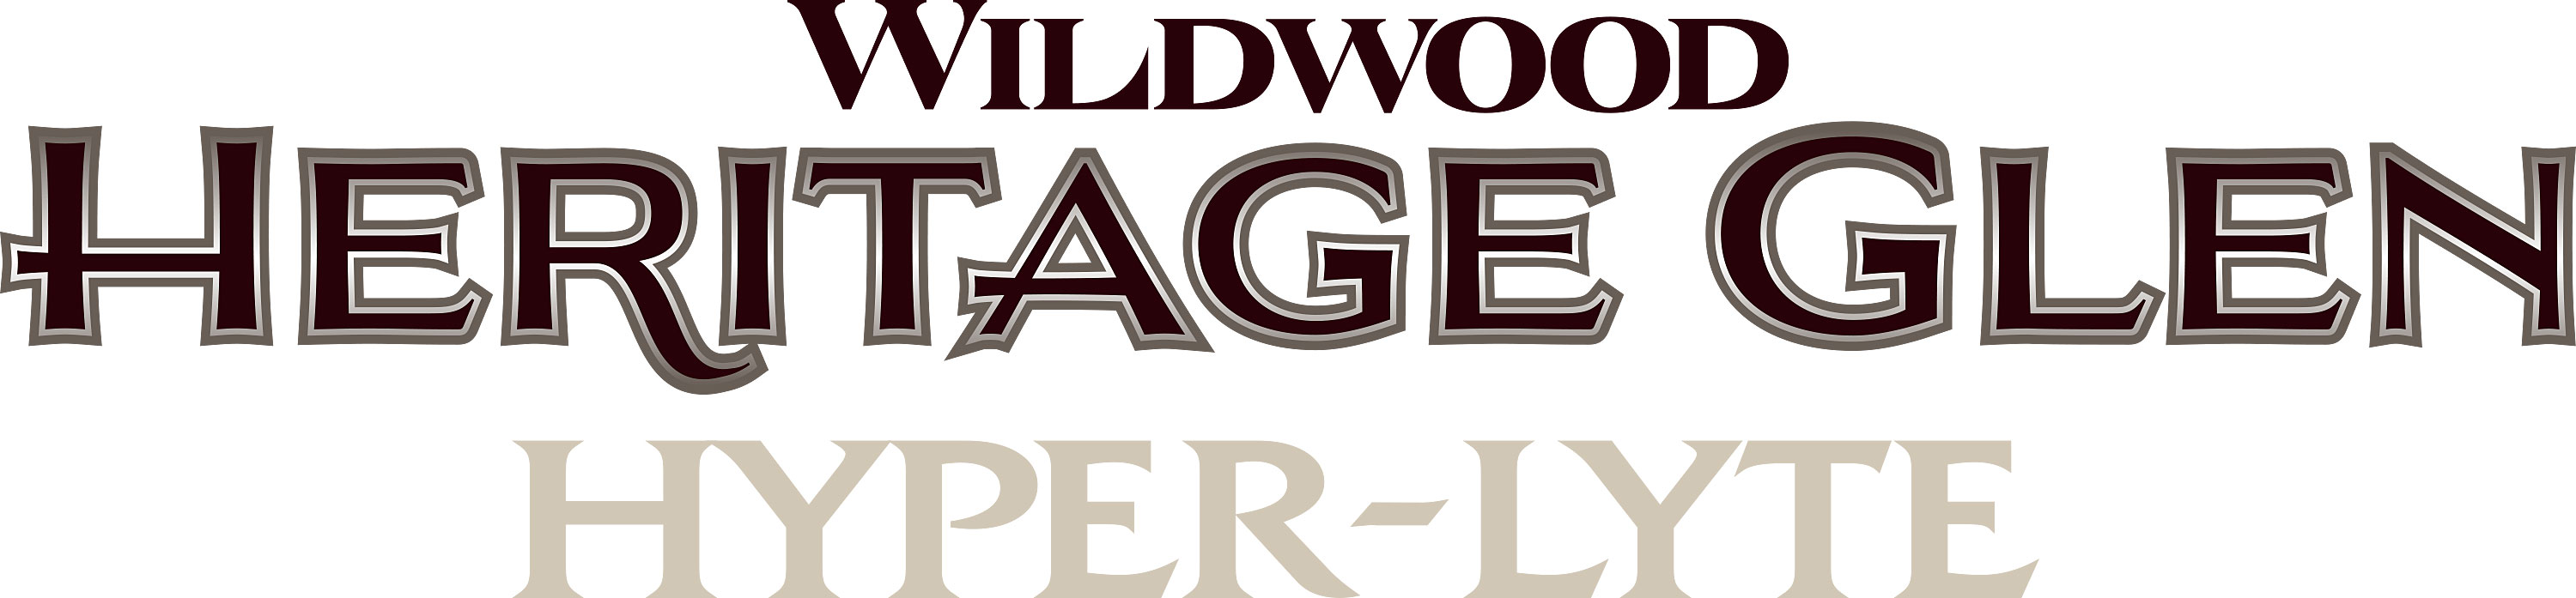 Wildwood Heritage Glen Hyper Lyte Travel Trailer Logo